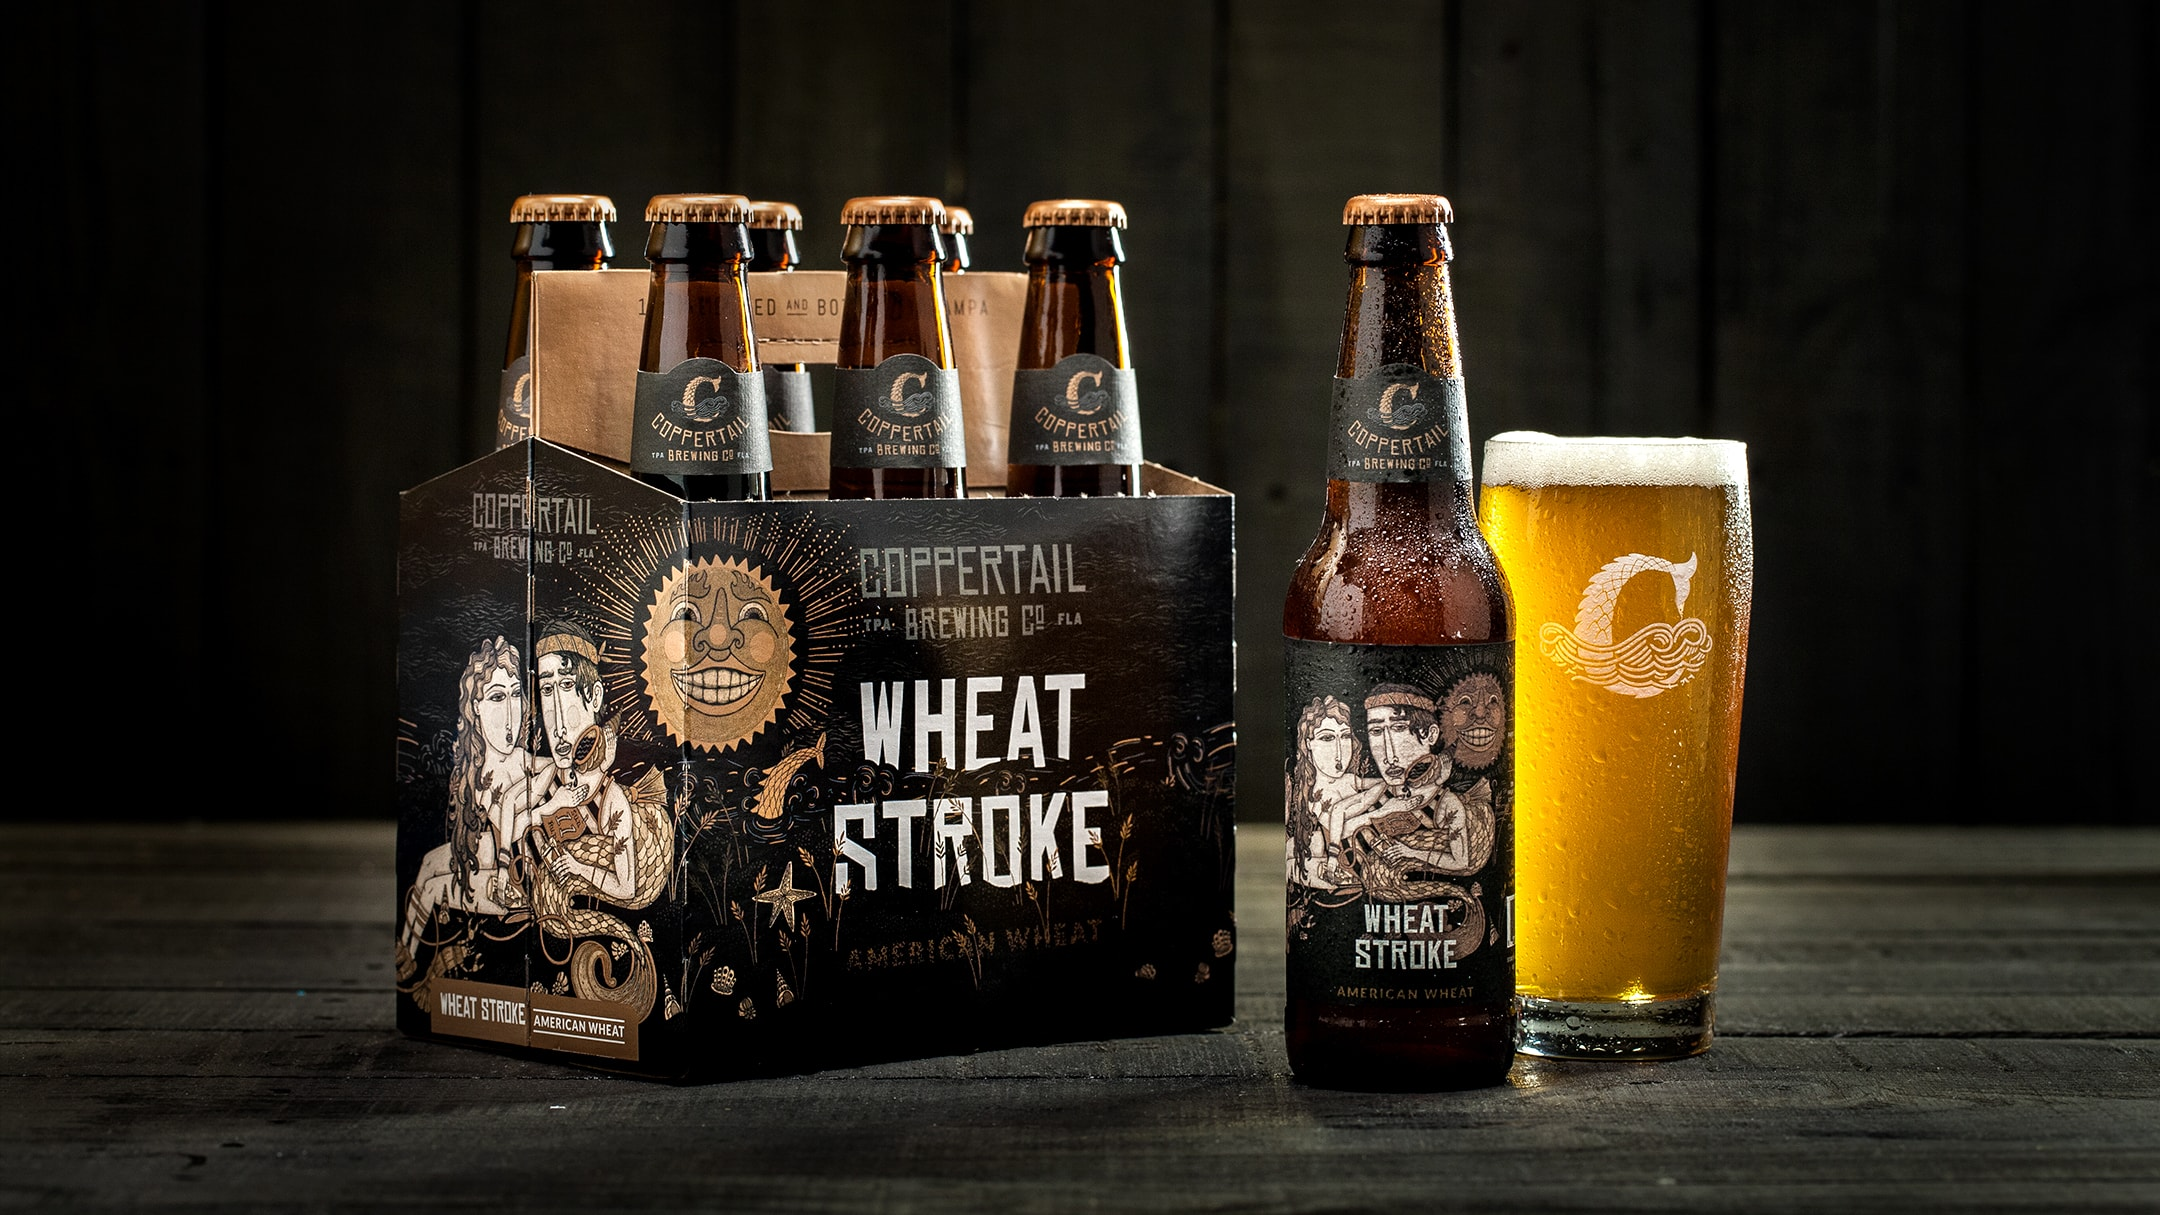 Coppertail 6-pack product packaging and beer in a glass.